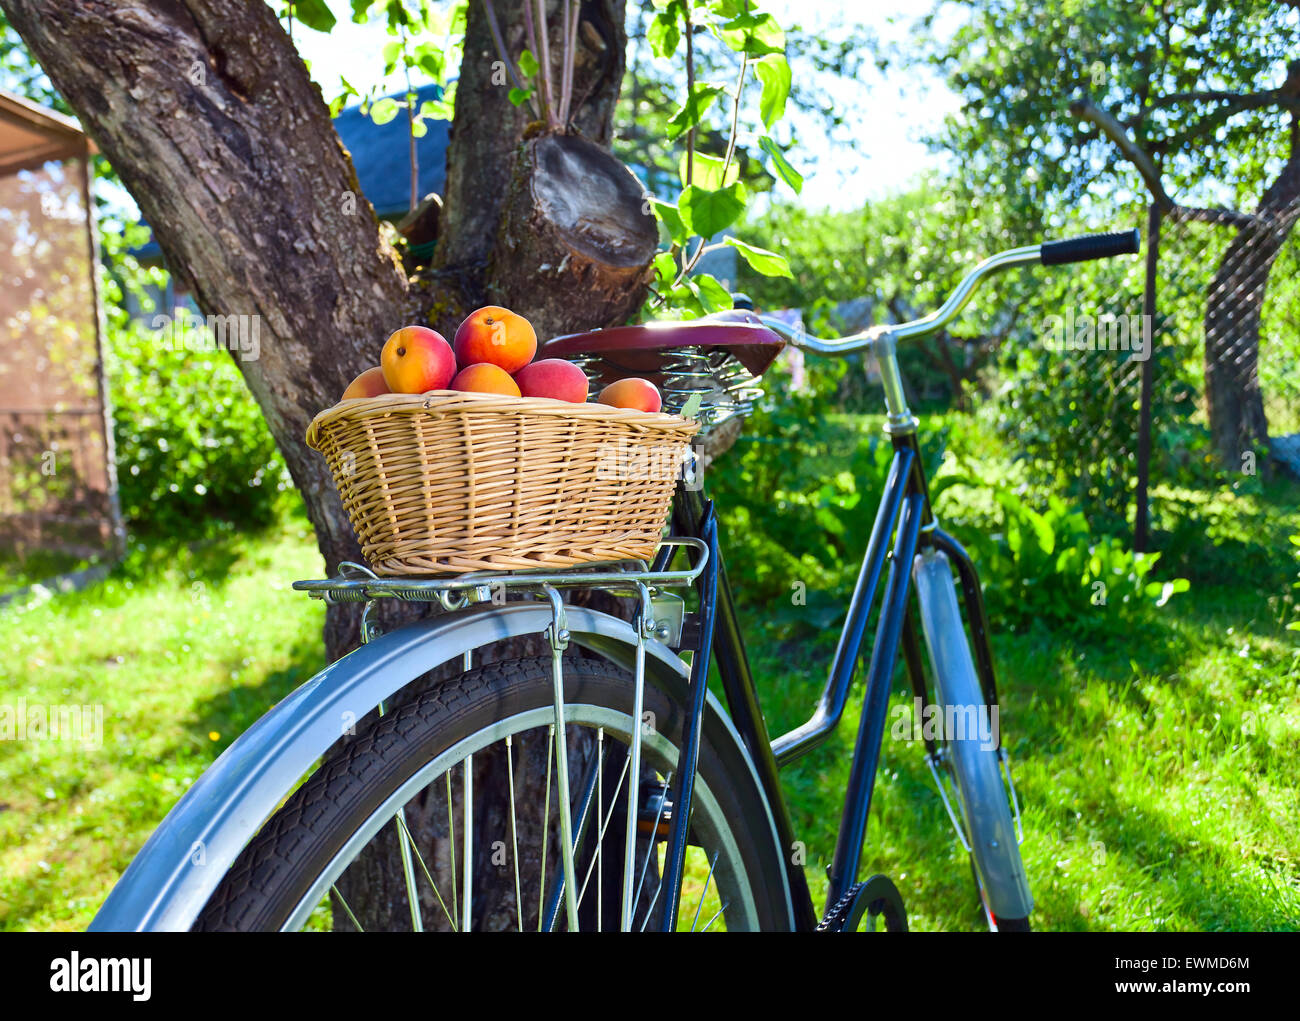 basket of juicy ripe apricots on bike in garden - Stock Image